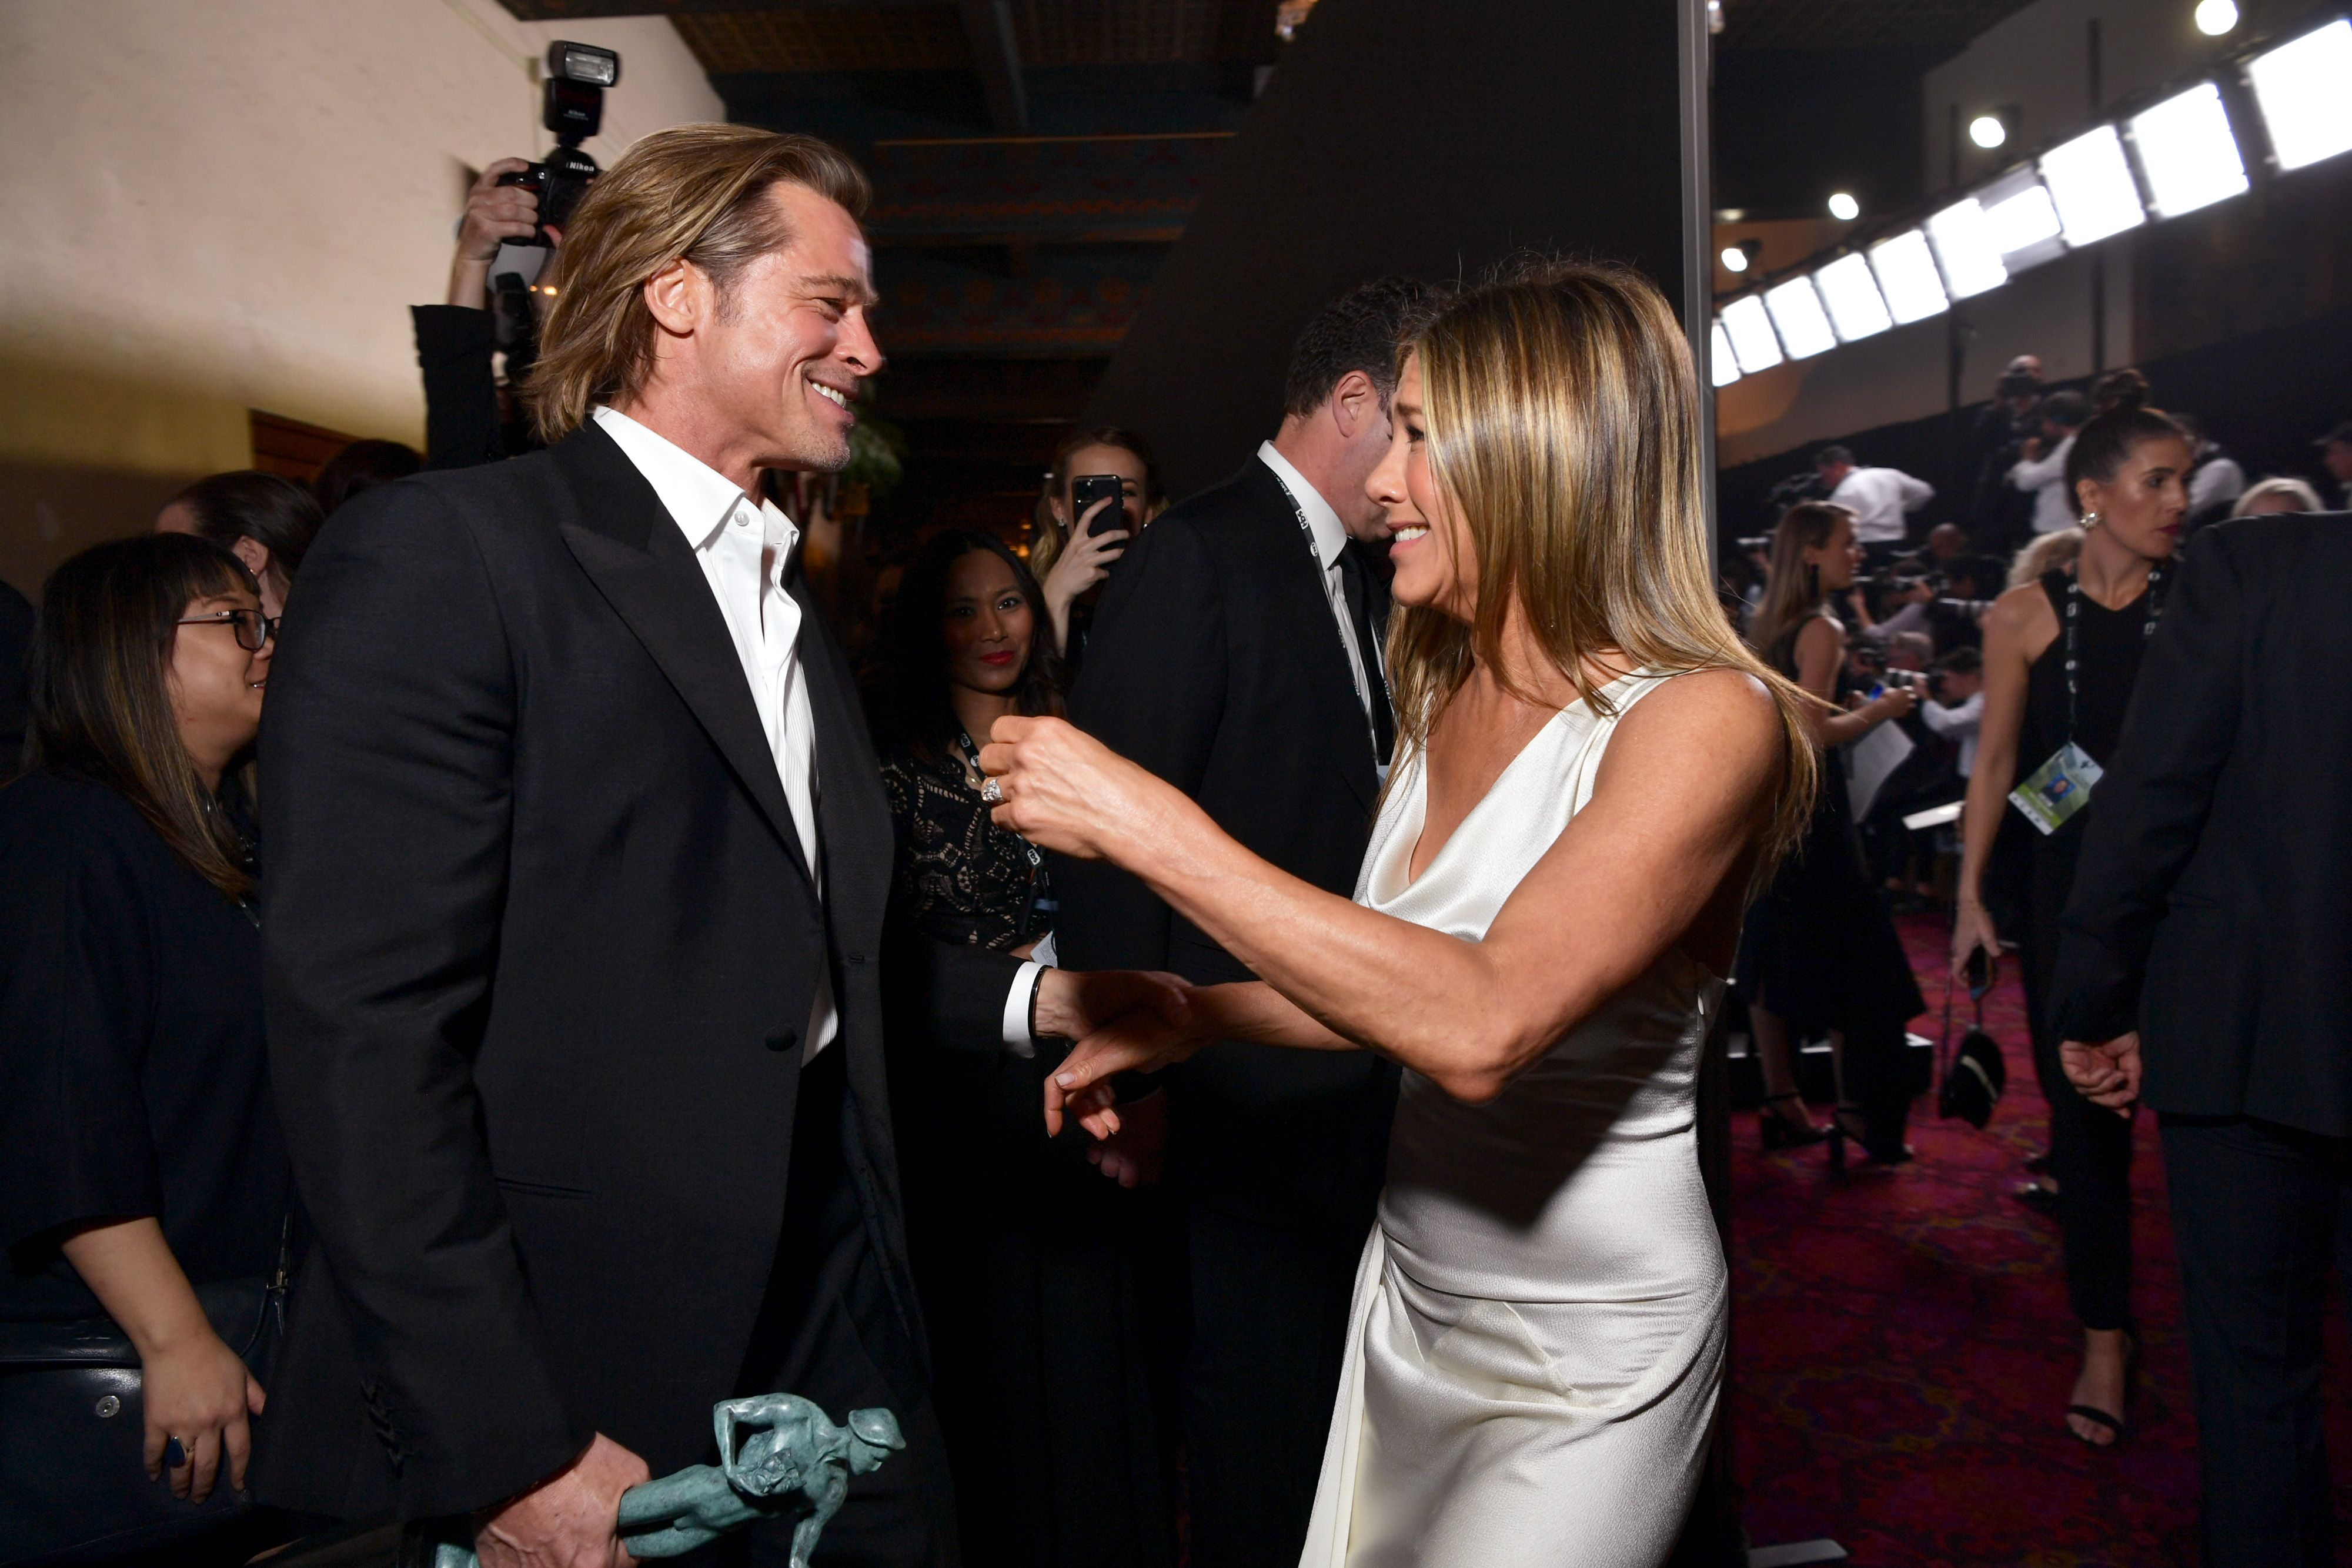 A Complete Timeline of Brad Pitt and Jennifer Aniston's Relationship